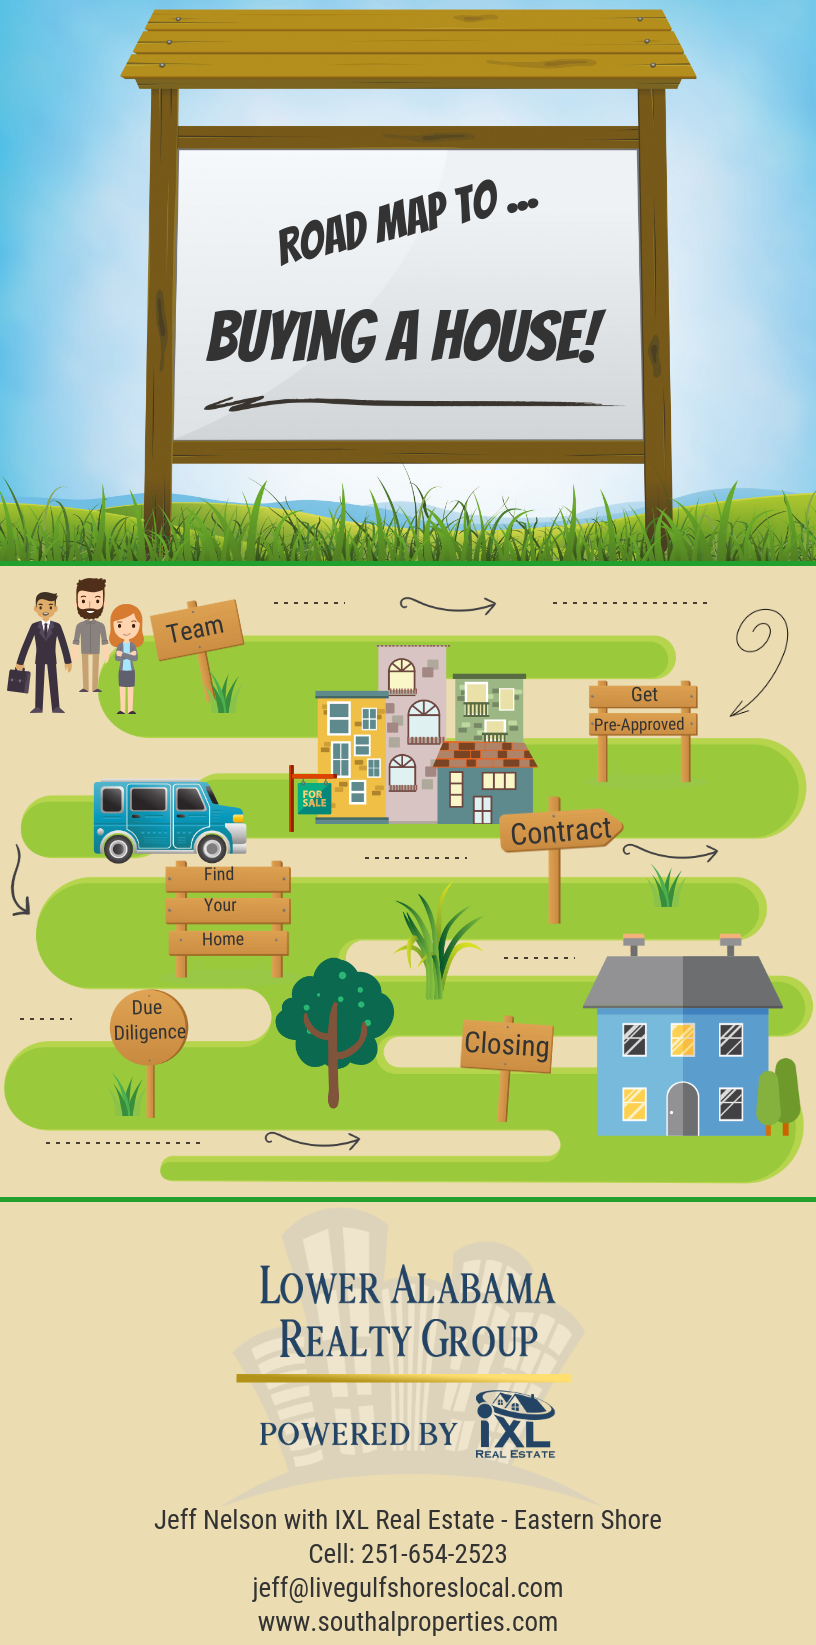 Road Map to Buying a House